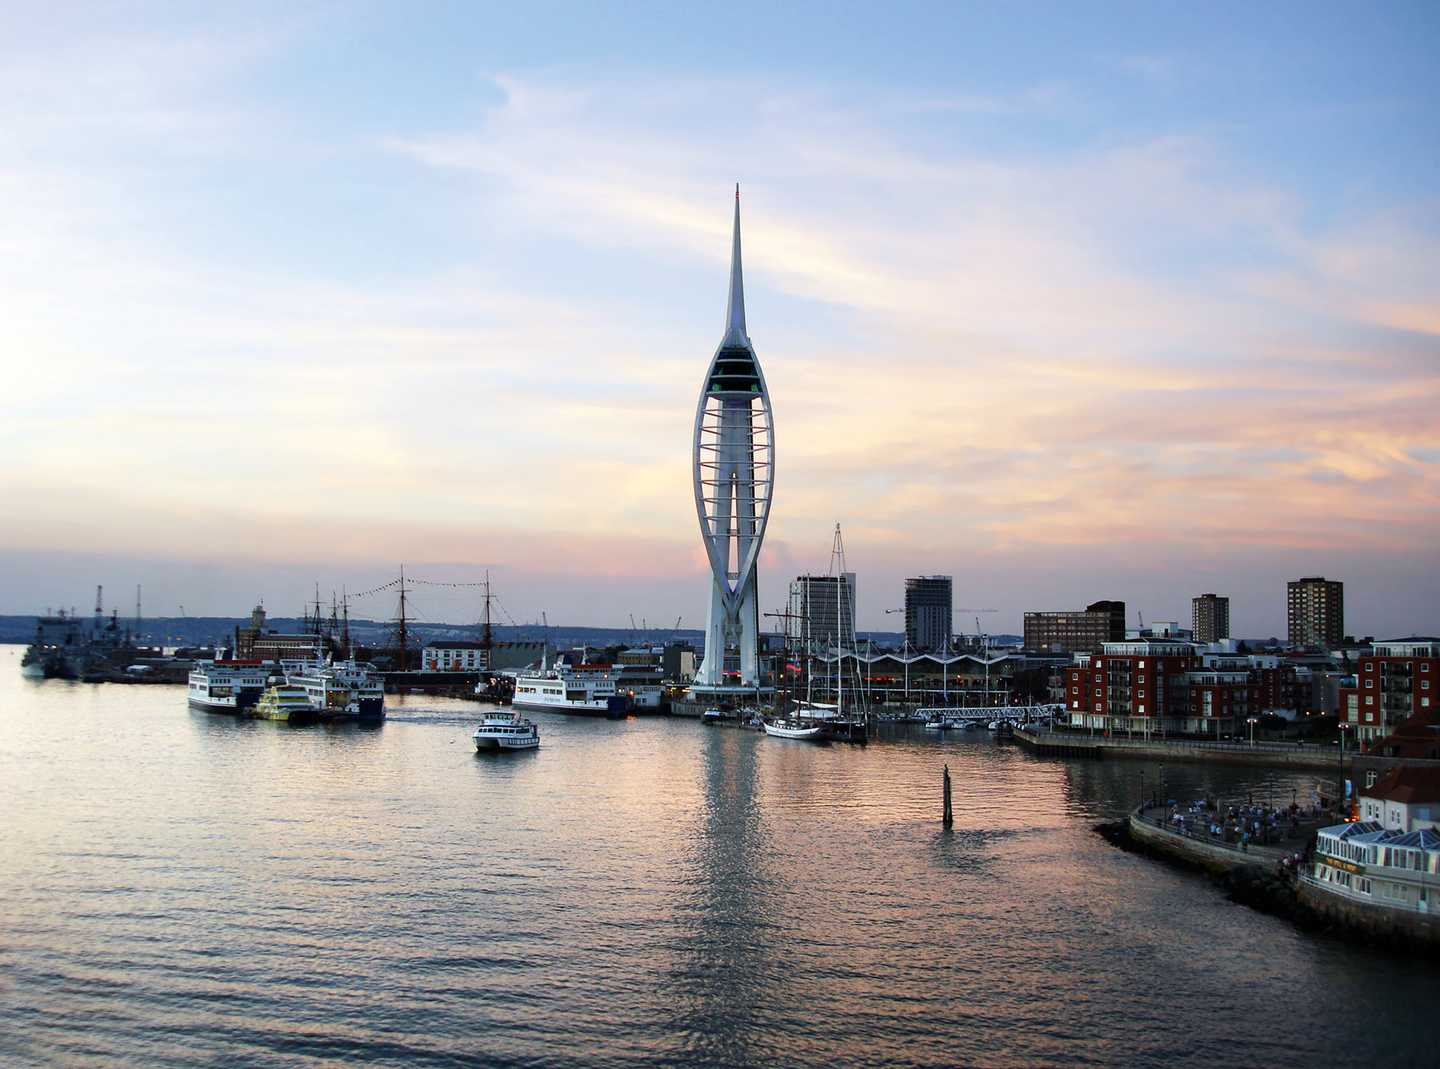 Spinnaker Tower at Portsmouth Harbour